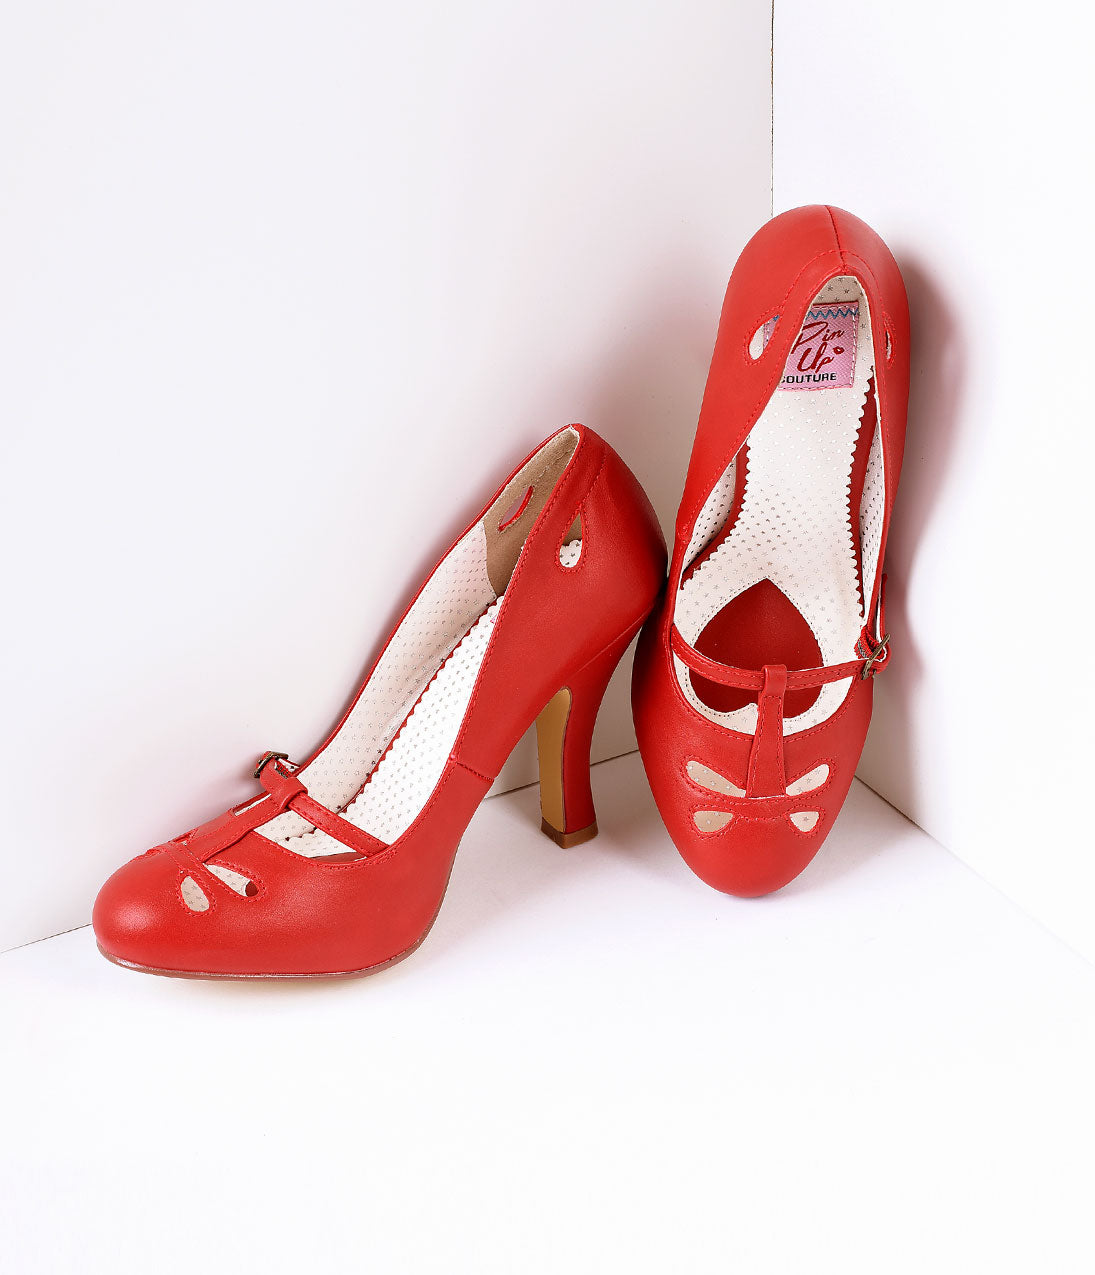 1950s Style Shoes | Heels, Flats, Saddle Shoes Red Pleather Cut Out Strap Smitten Mary Jane Heels $57.00 AT vintagedancer.com